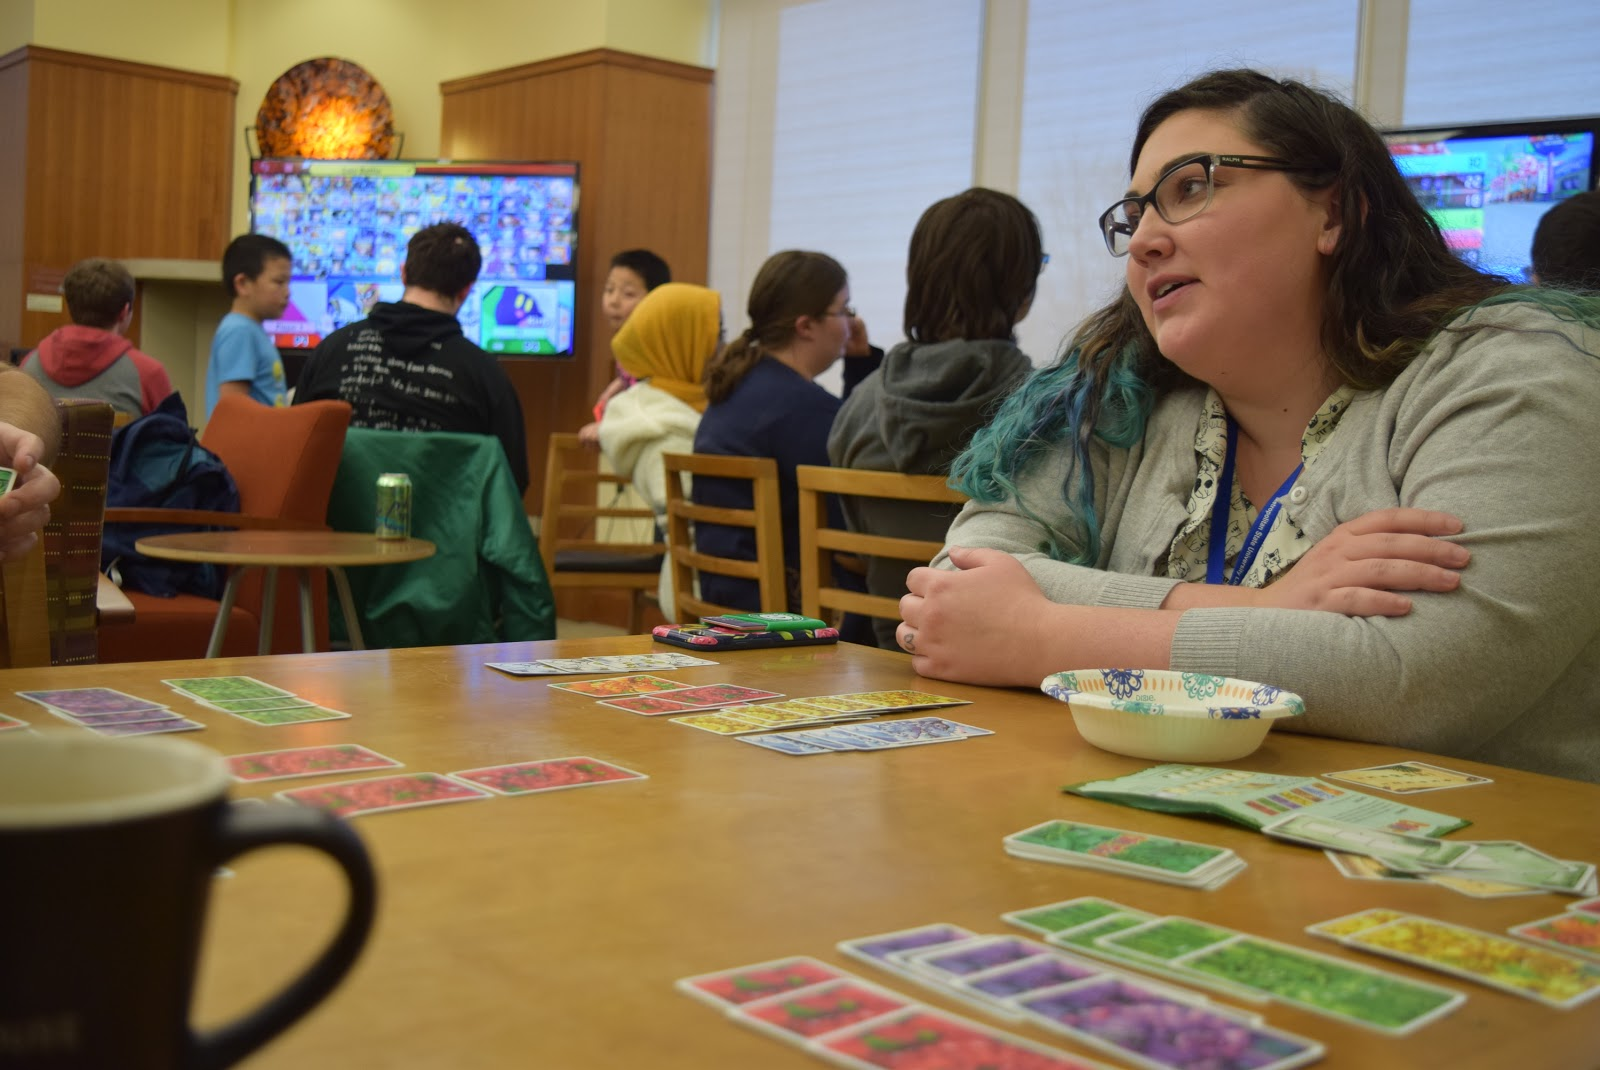 Library offers open invite to Game Night